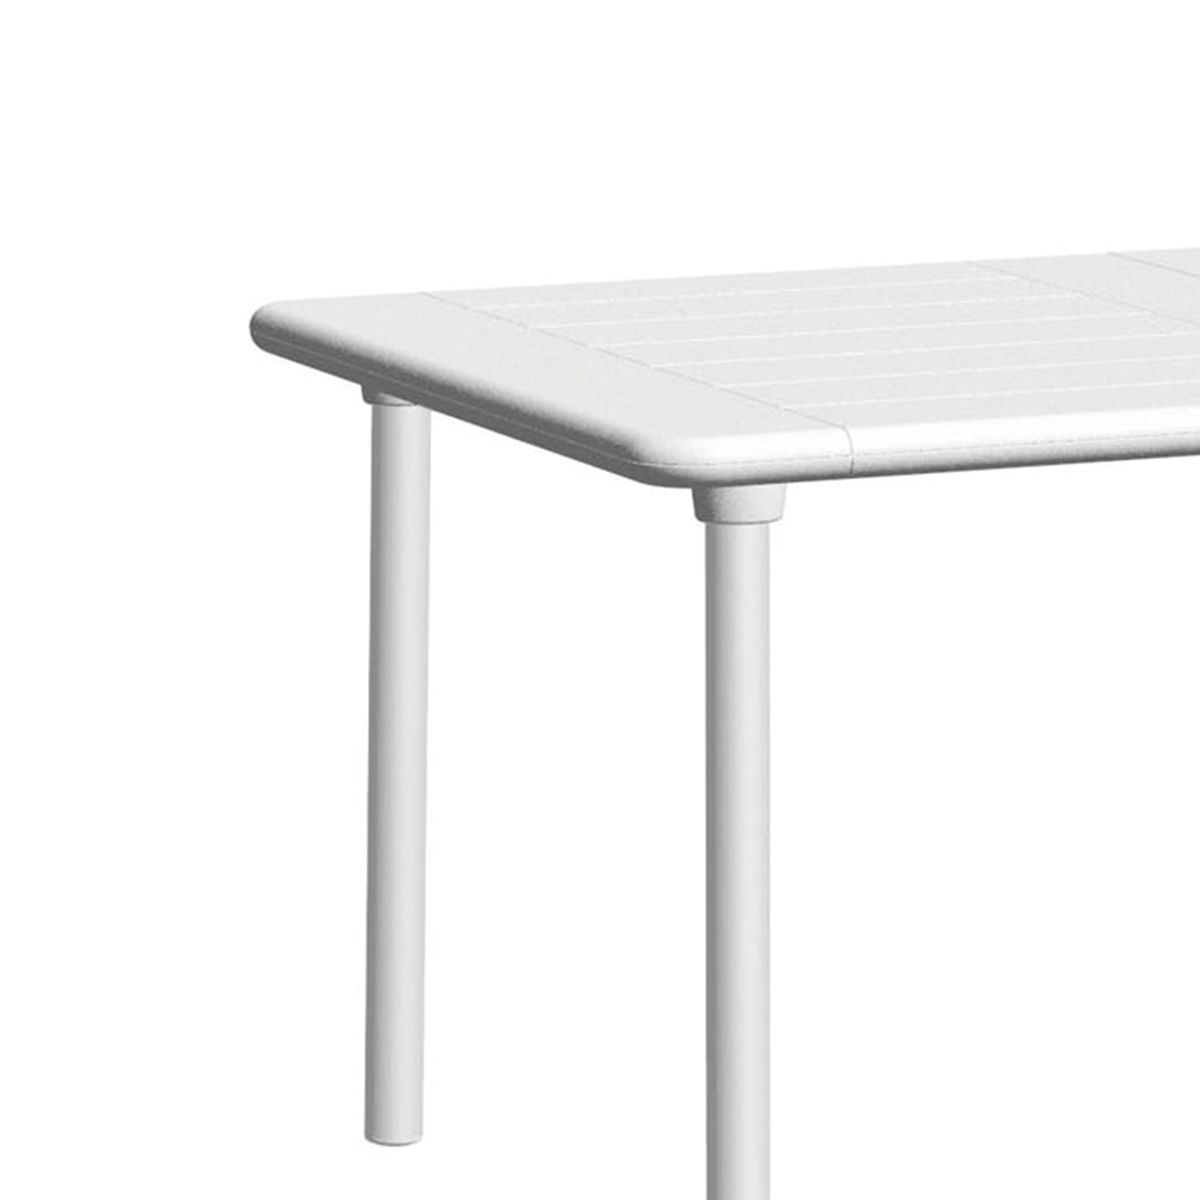 Table extensible jardin nardi maestrale 220 cm zendart for Table extensible 160